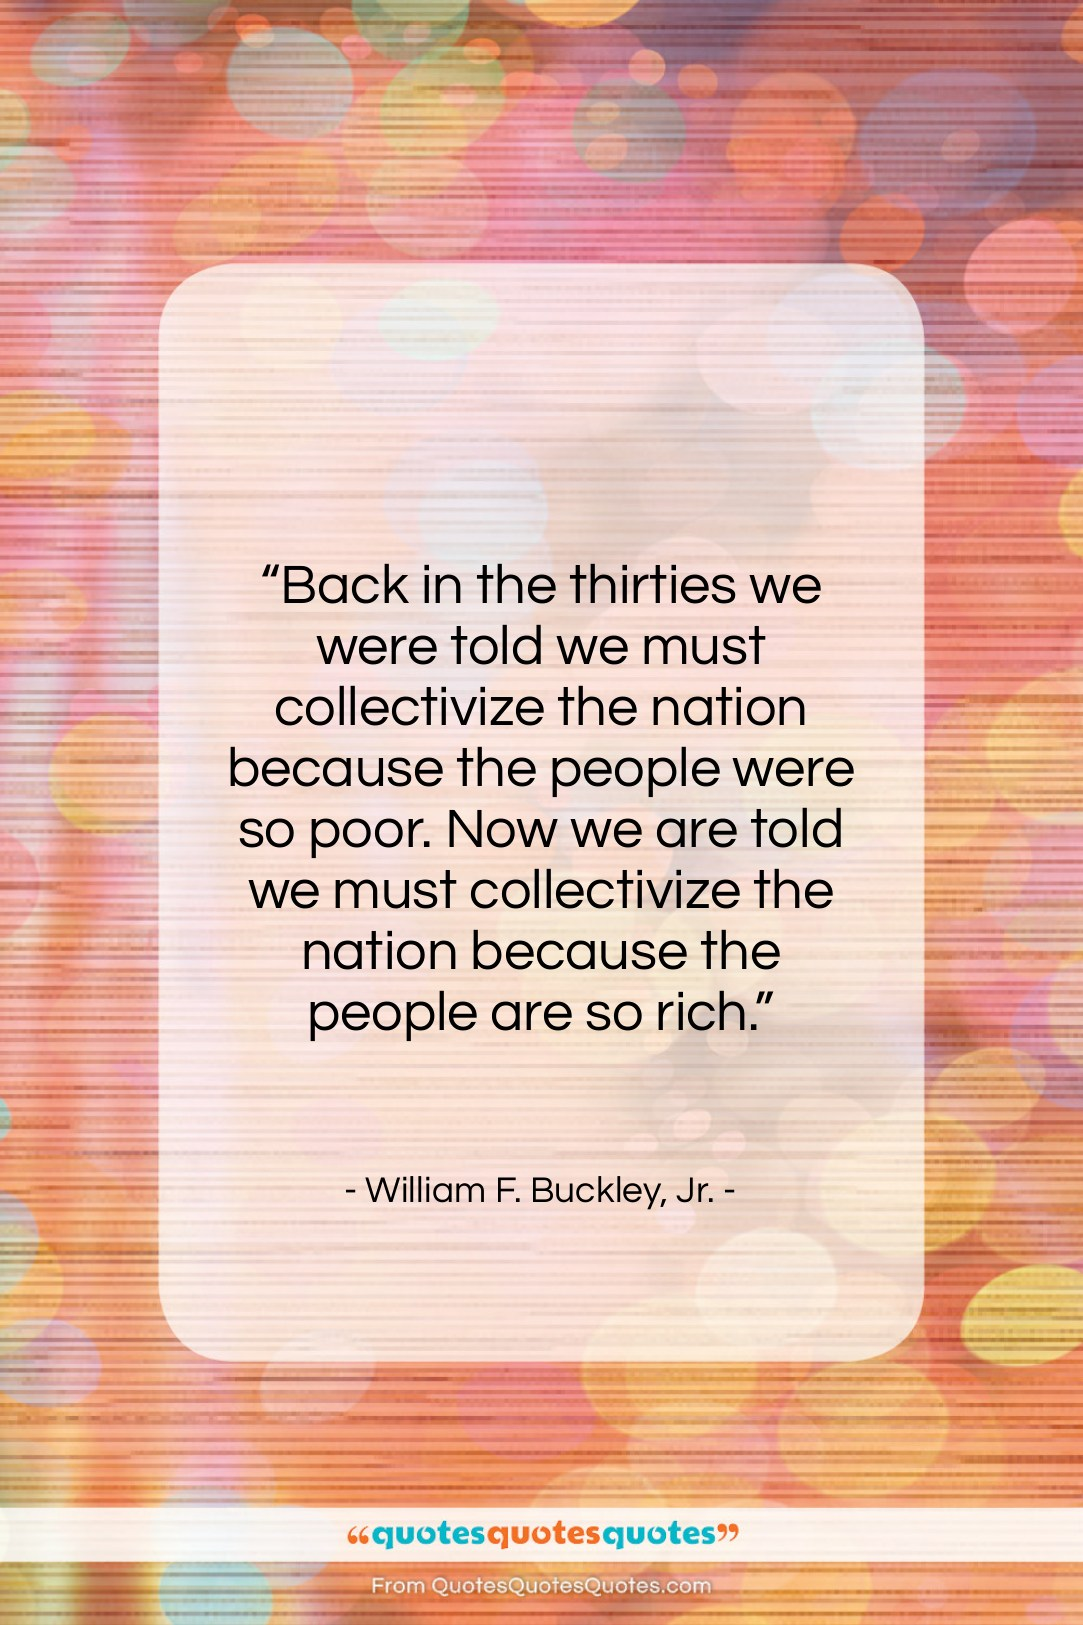 """William F. Buckley, Jr. quote: """"Back in the thirties we were told…""""- at QuotesQuotesQuotes.com"""